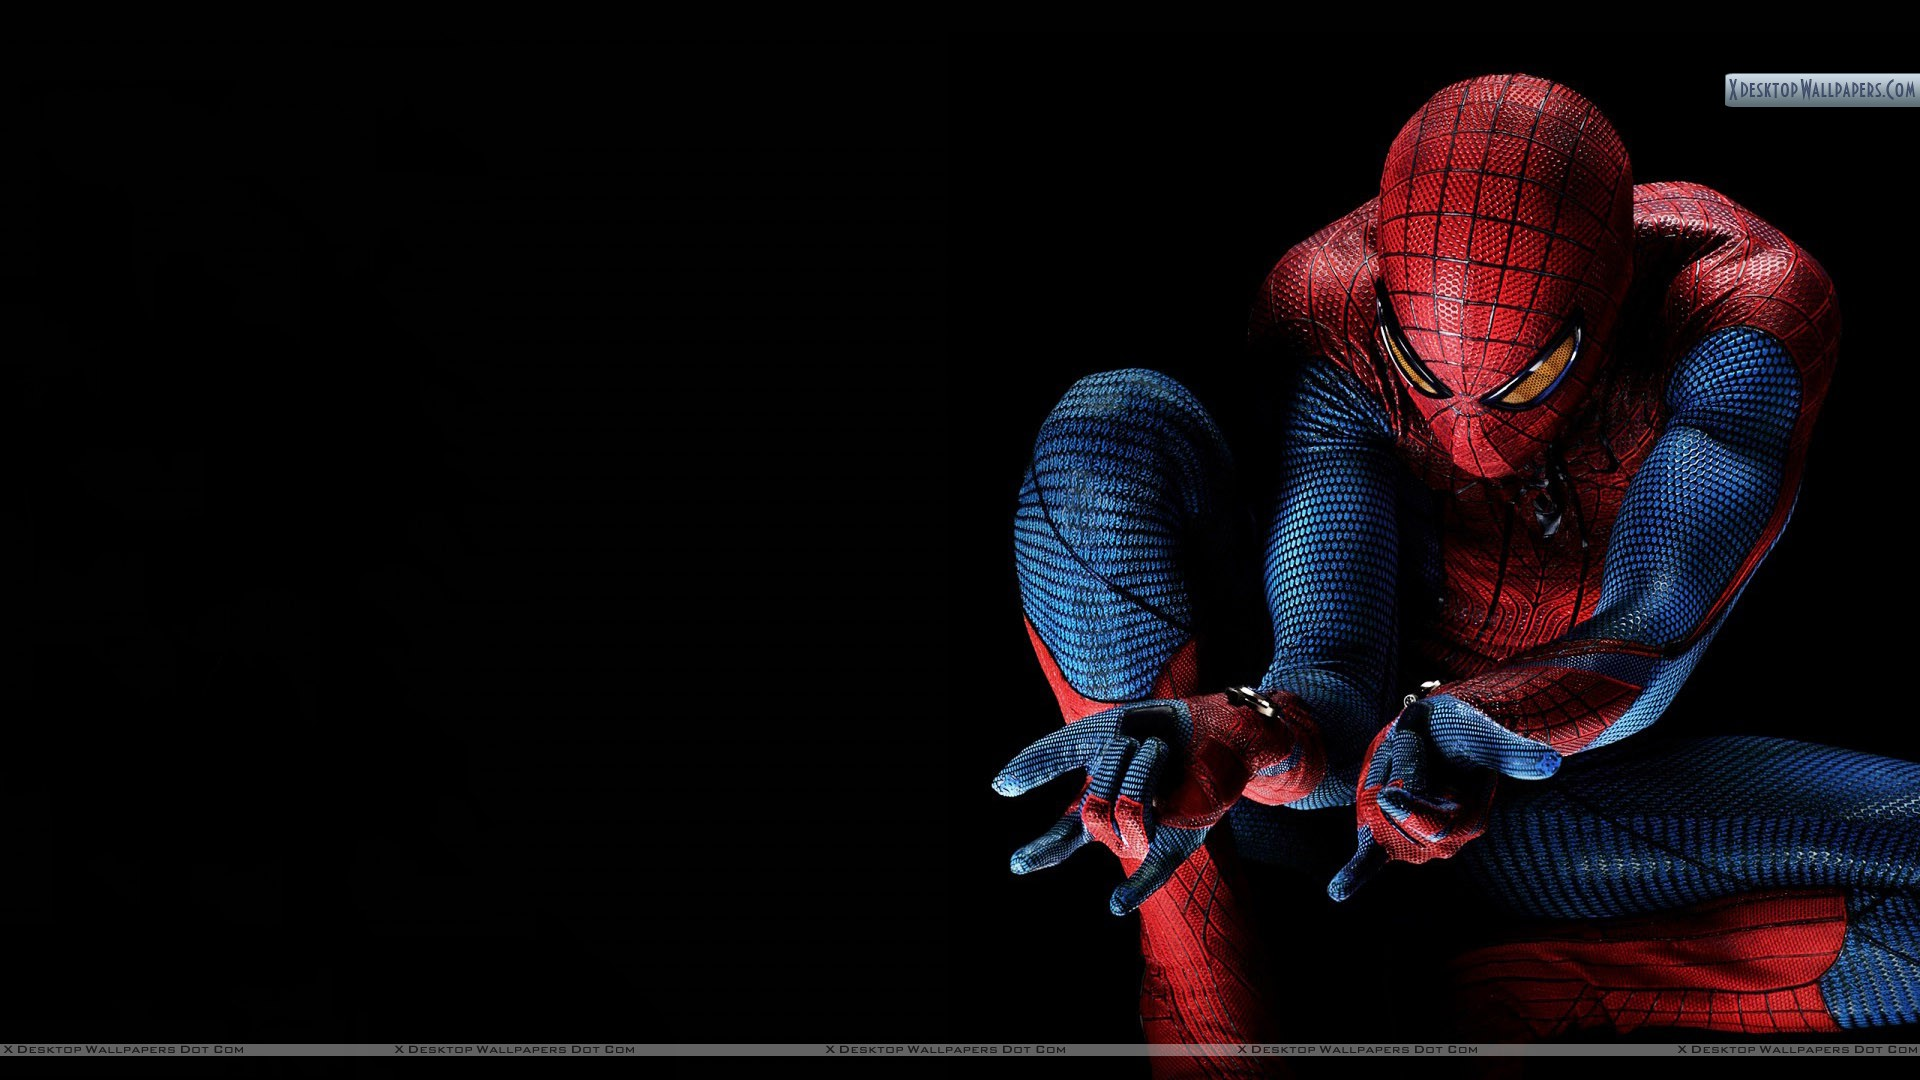 31 spiderman hd wallpaper - photo #5